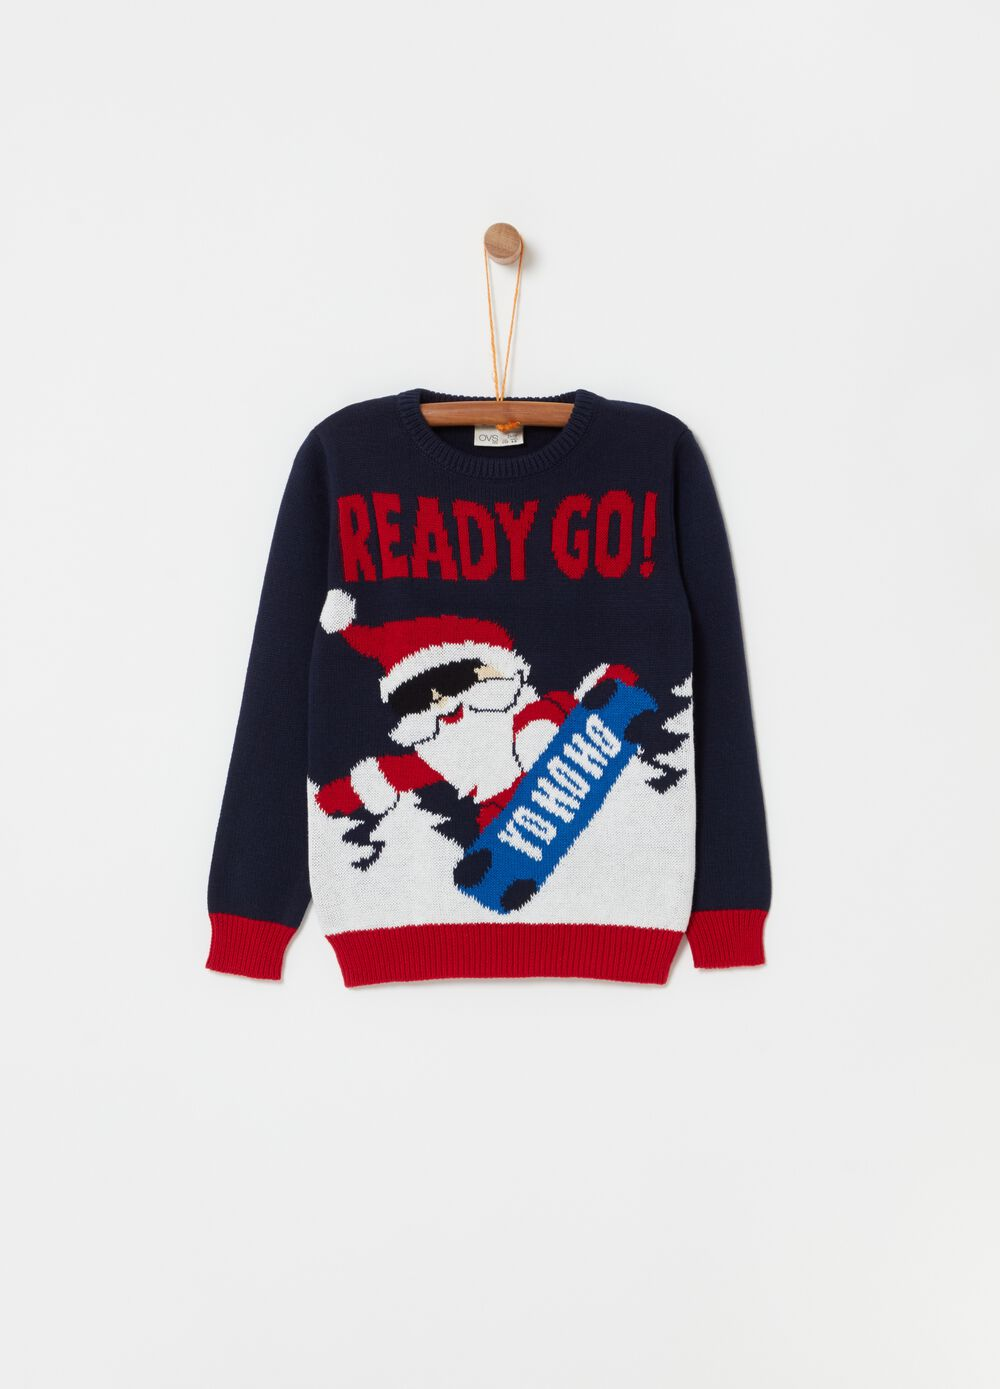 Crew-neck top with Father Christmas design